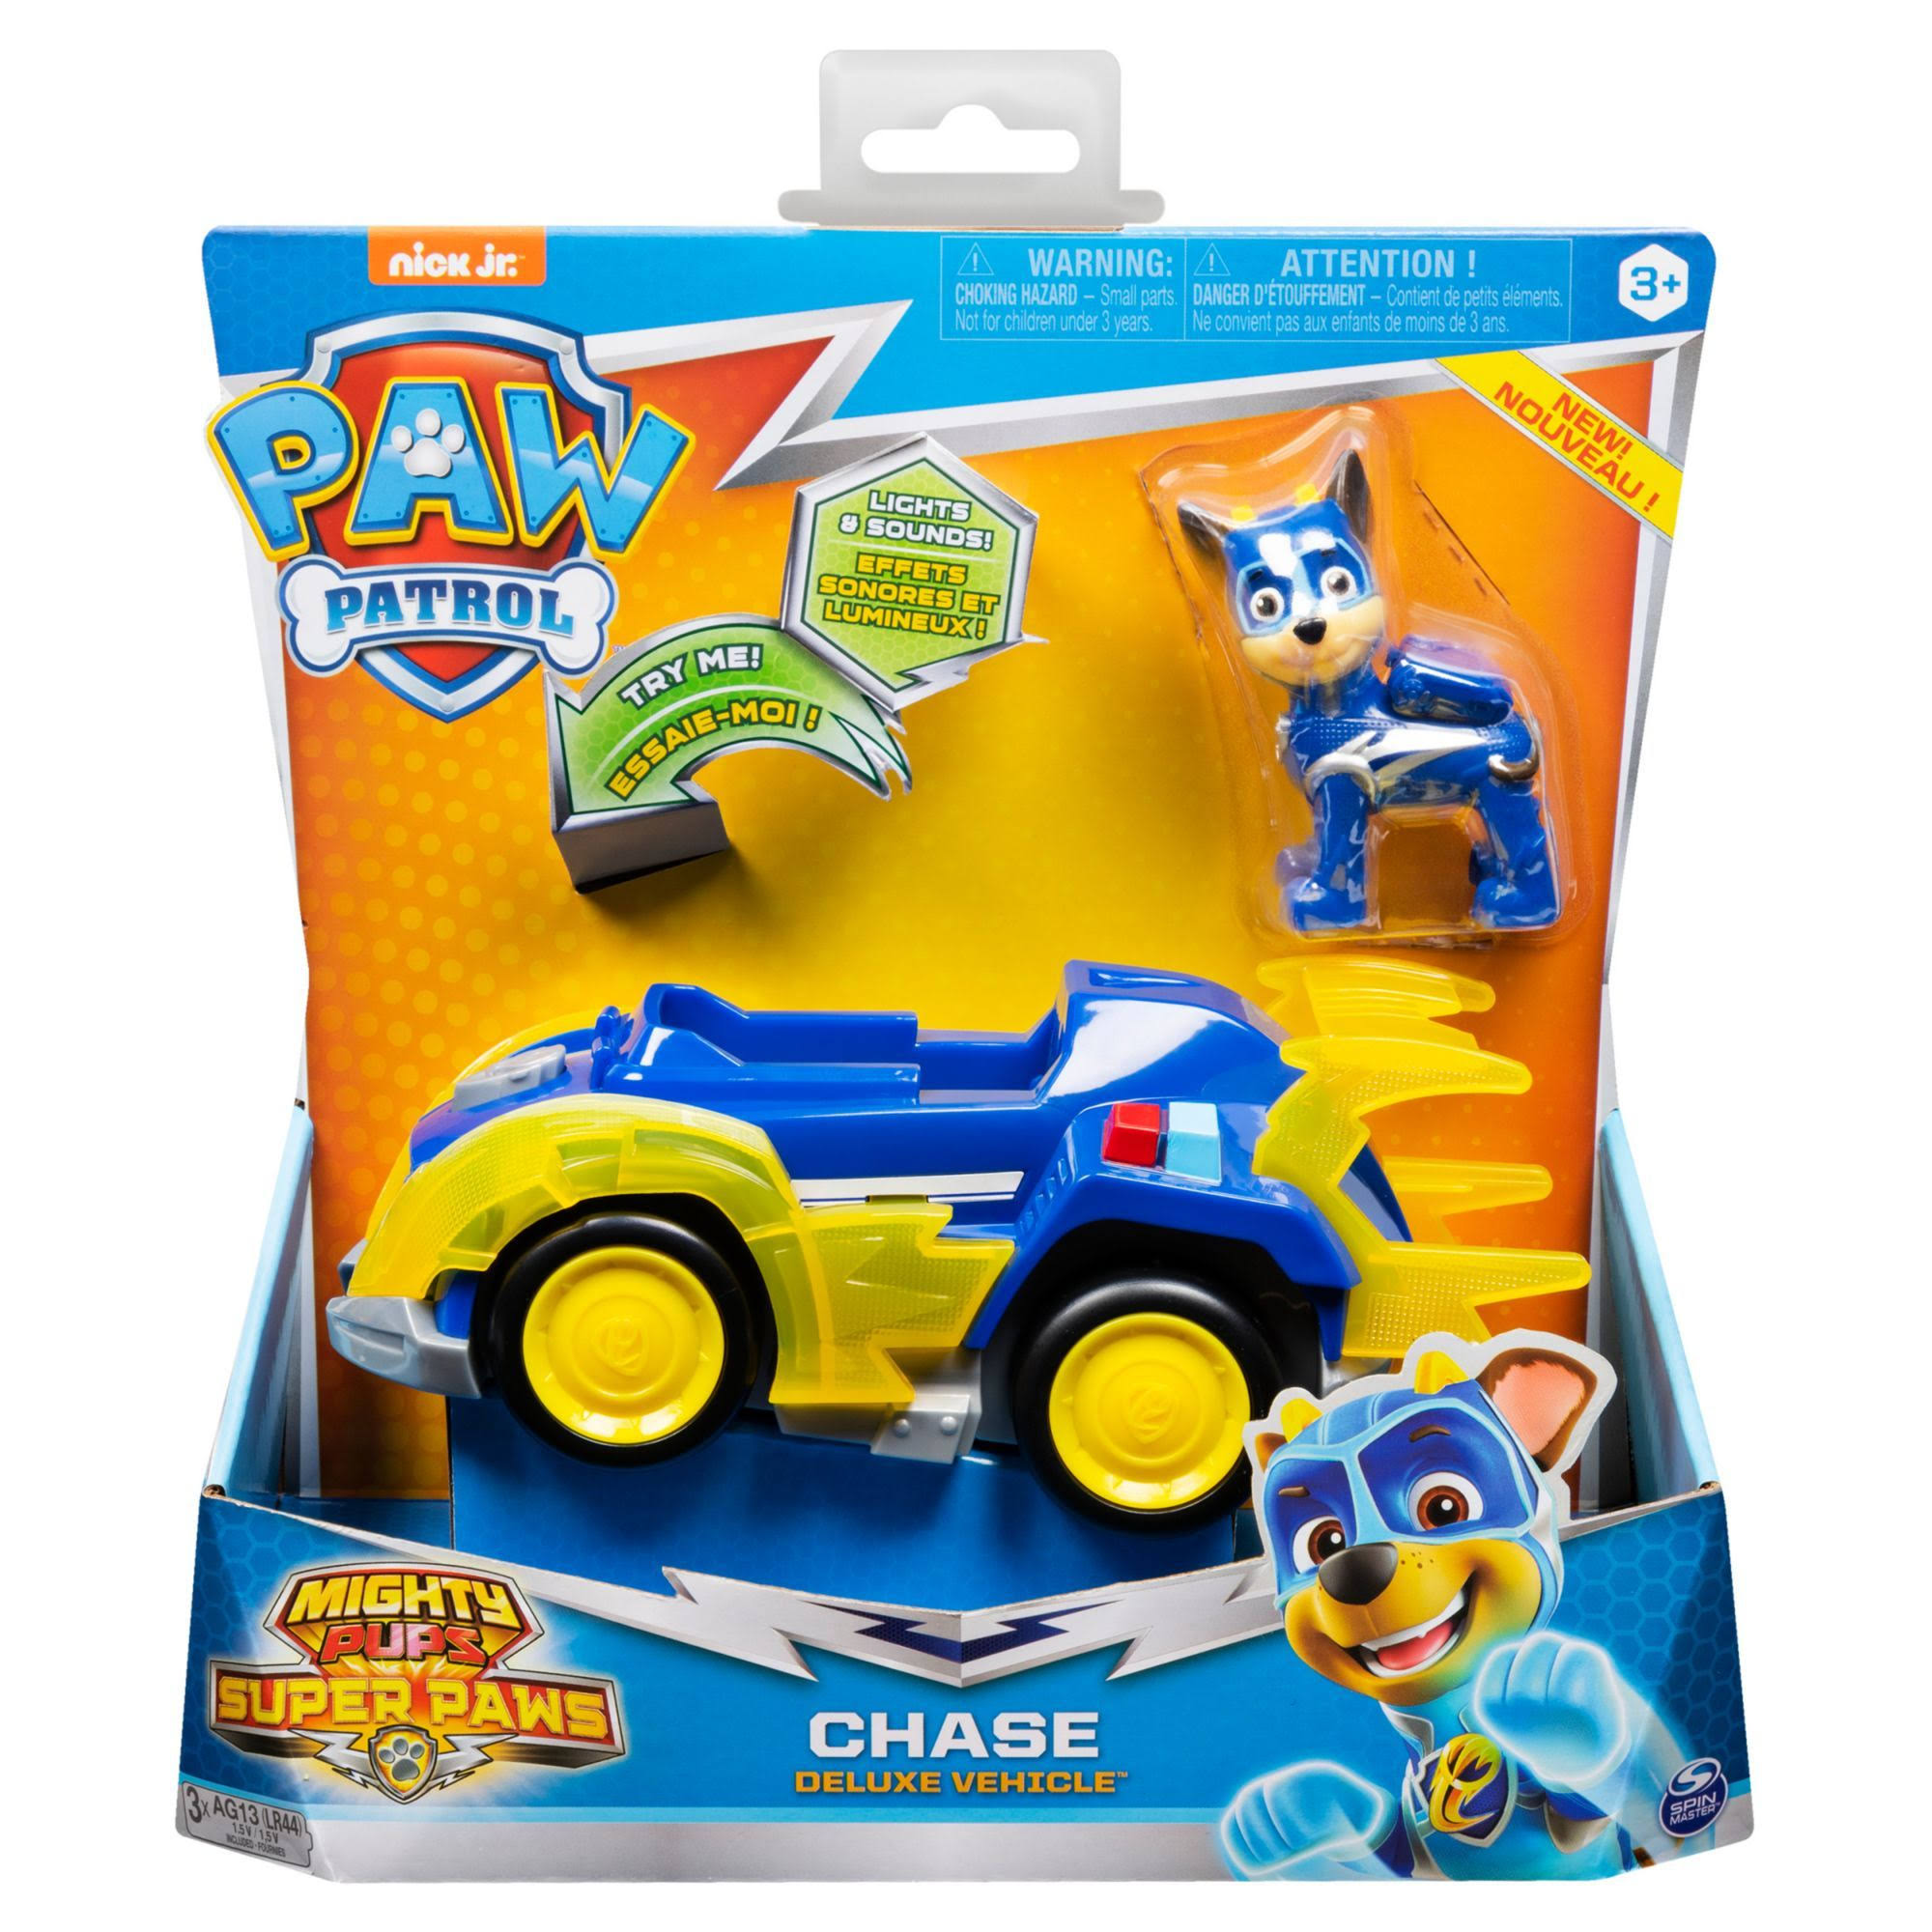 Paw Patrol Mighty Pups Super Paws Deluxe Vehicle w/ Lights and Sounds - Assorted Styles